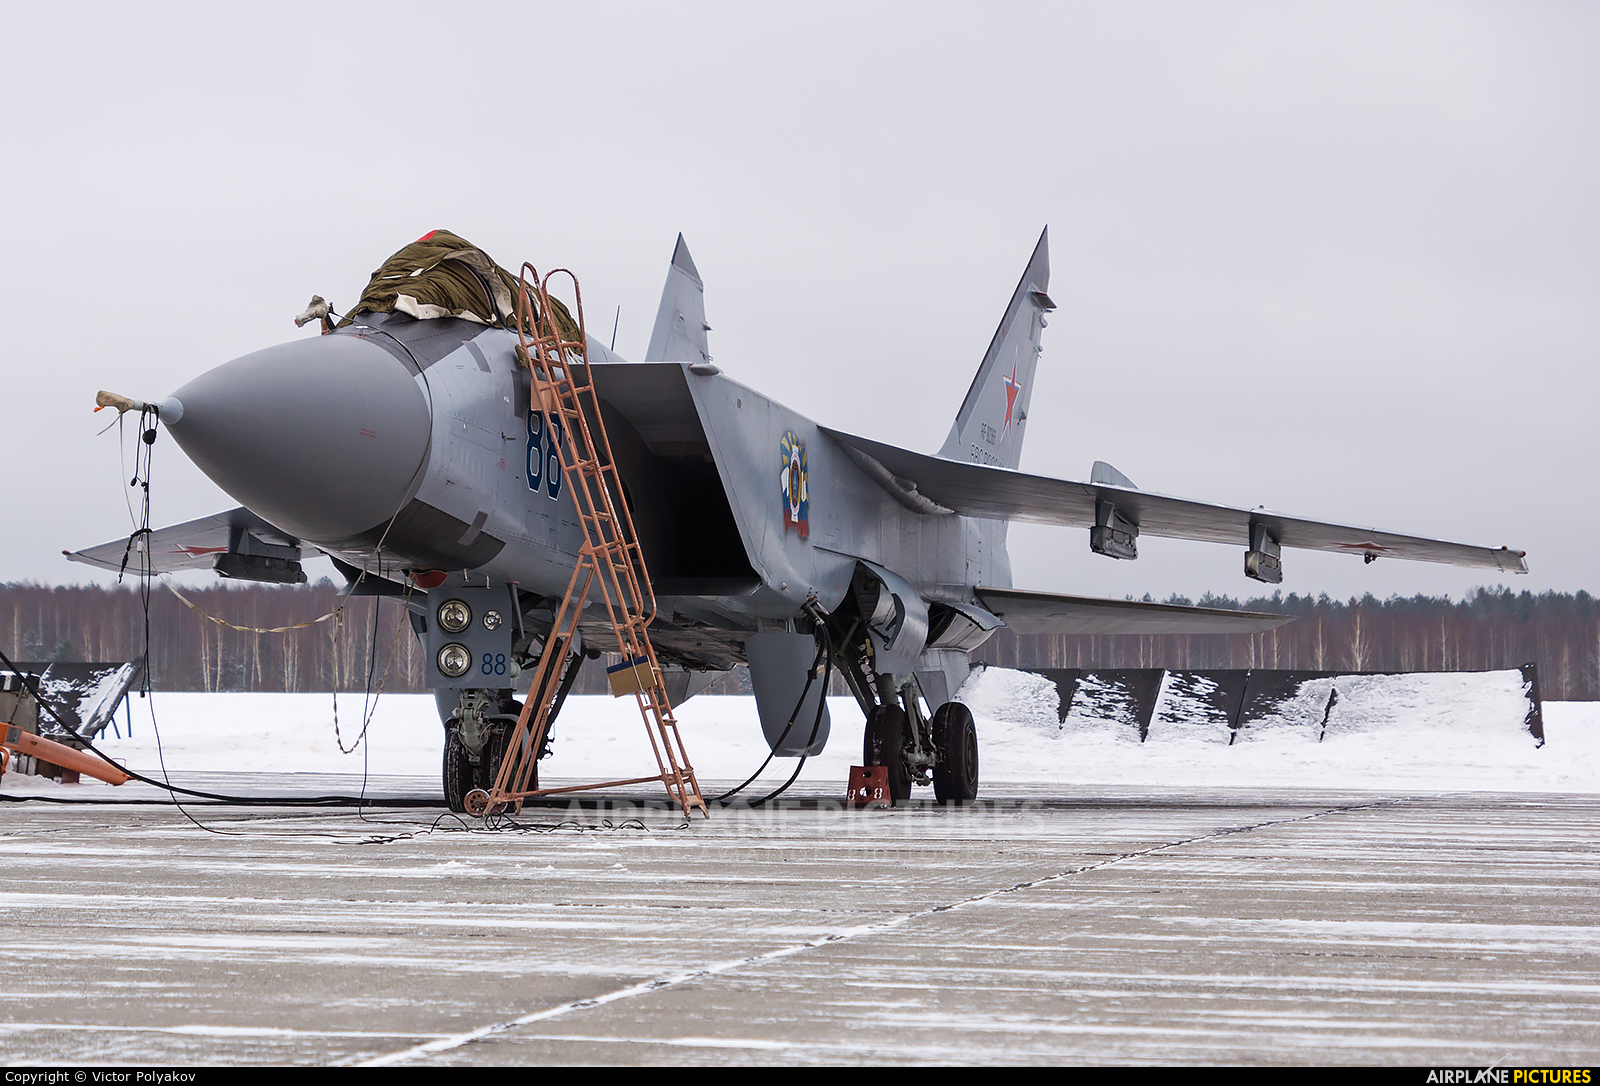 Russia - Air Force RF-92366 aircraft at Off Airport - Russia